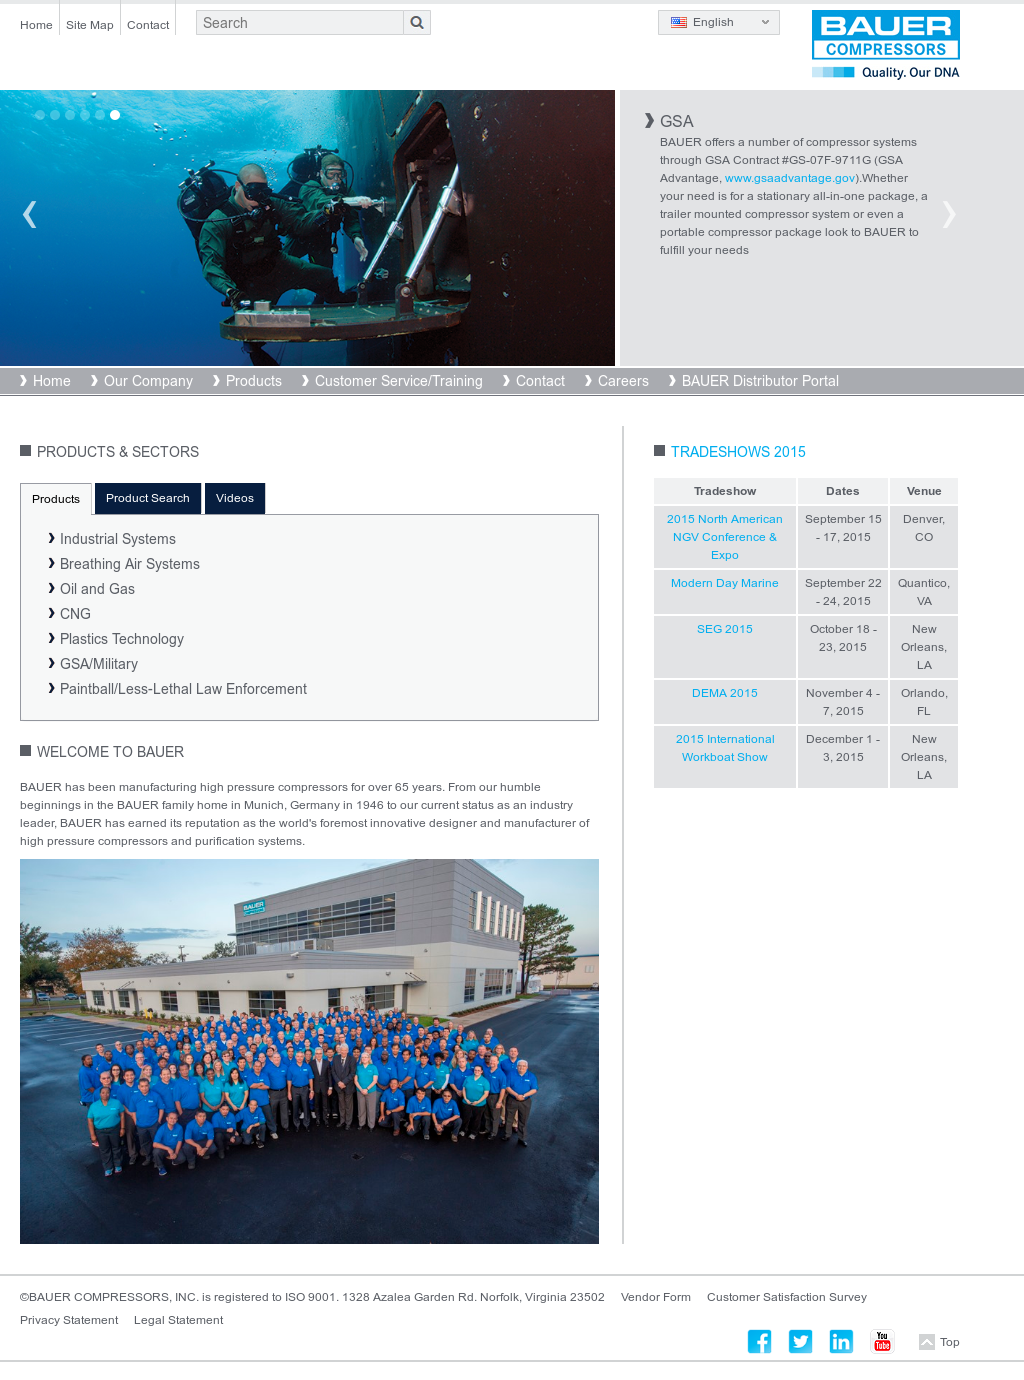 Bauer Compressors Competitors, Revenue and Employees - Owler